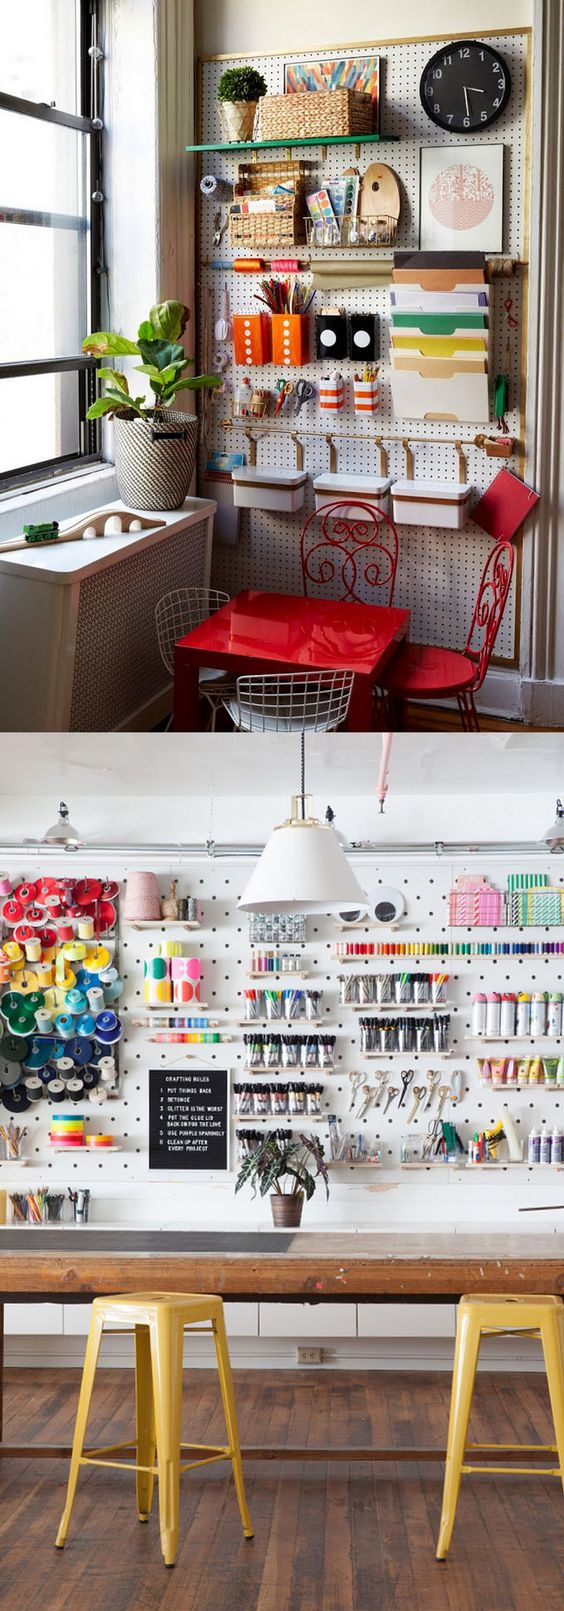 Creative storage inspiration is anything but in short supply with this collection of 21 Ways to Easily Organize your Craft Room or Workshop. Not only will you have a place for all your supplies, it'll look great too!